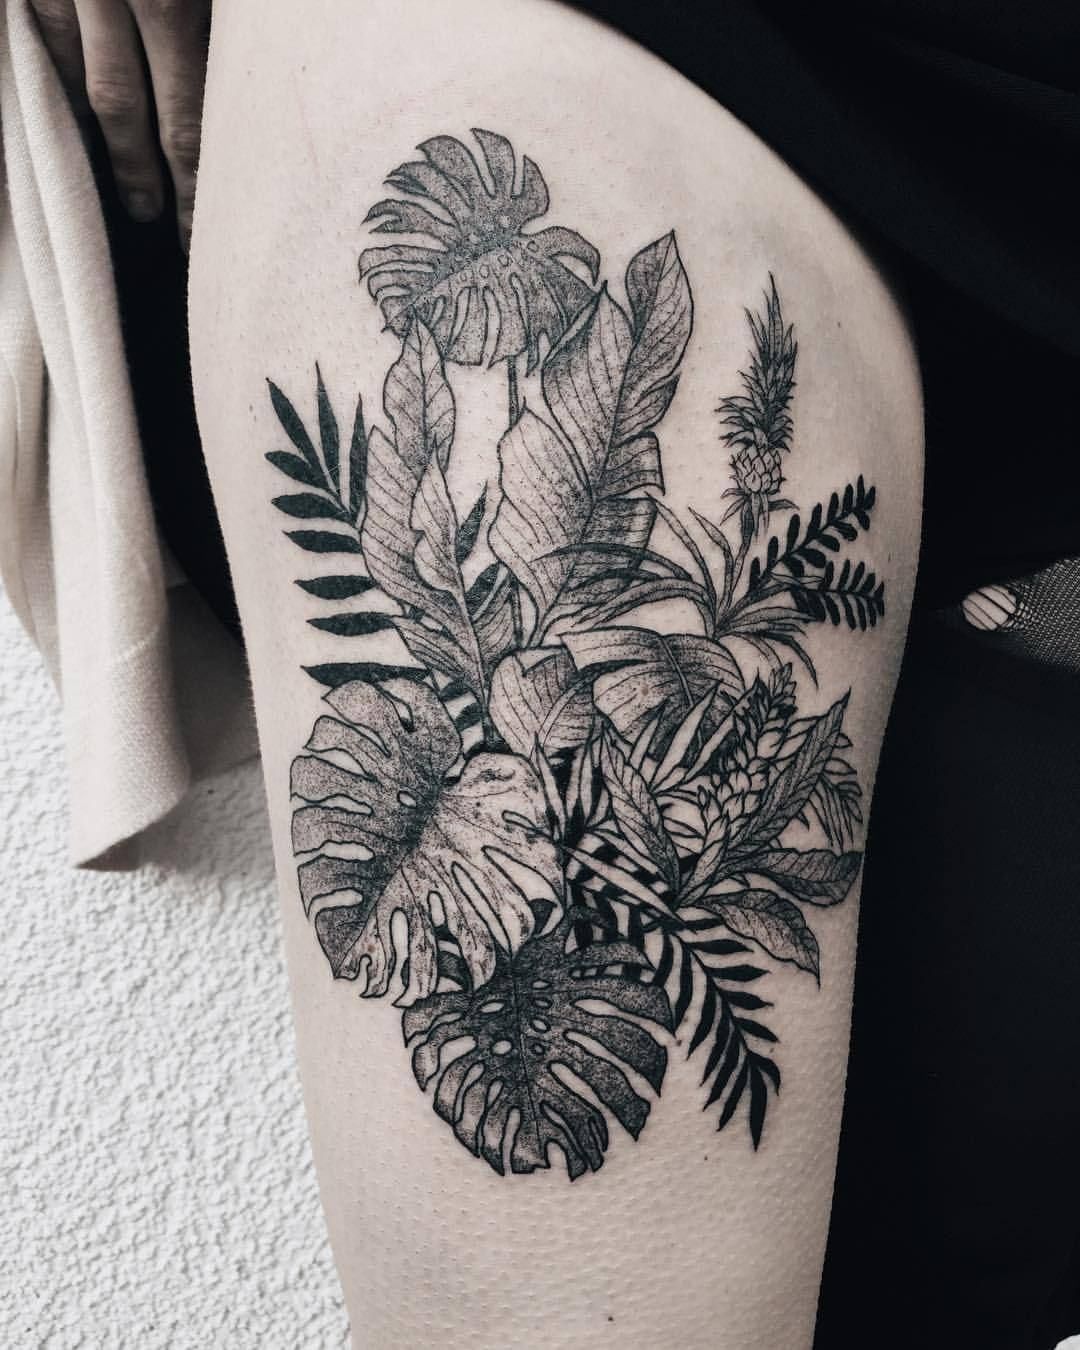 Pin By Dayanara On Tattoos Tropical Flower Tattoos Floral Tattoo Sleeve Marquesan Tattoos Leaf tattoos can have a wide assortment of meanings; pinterest